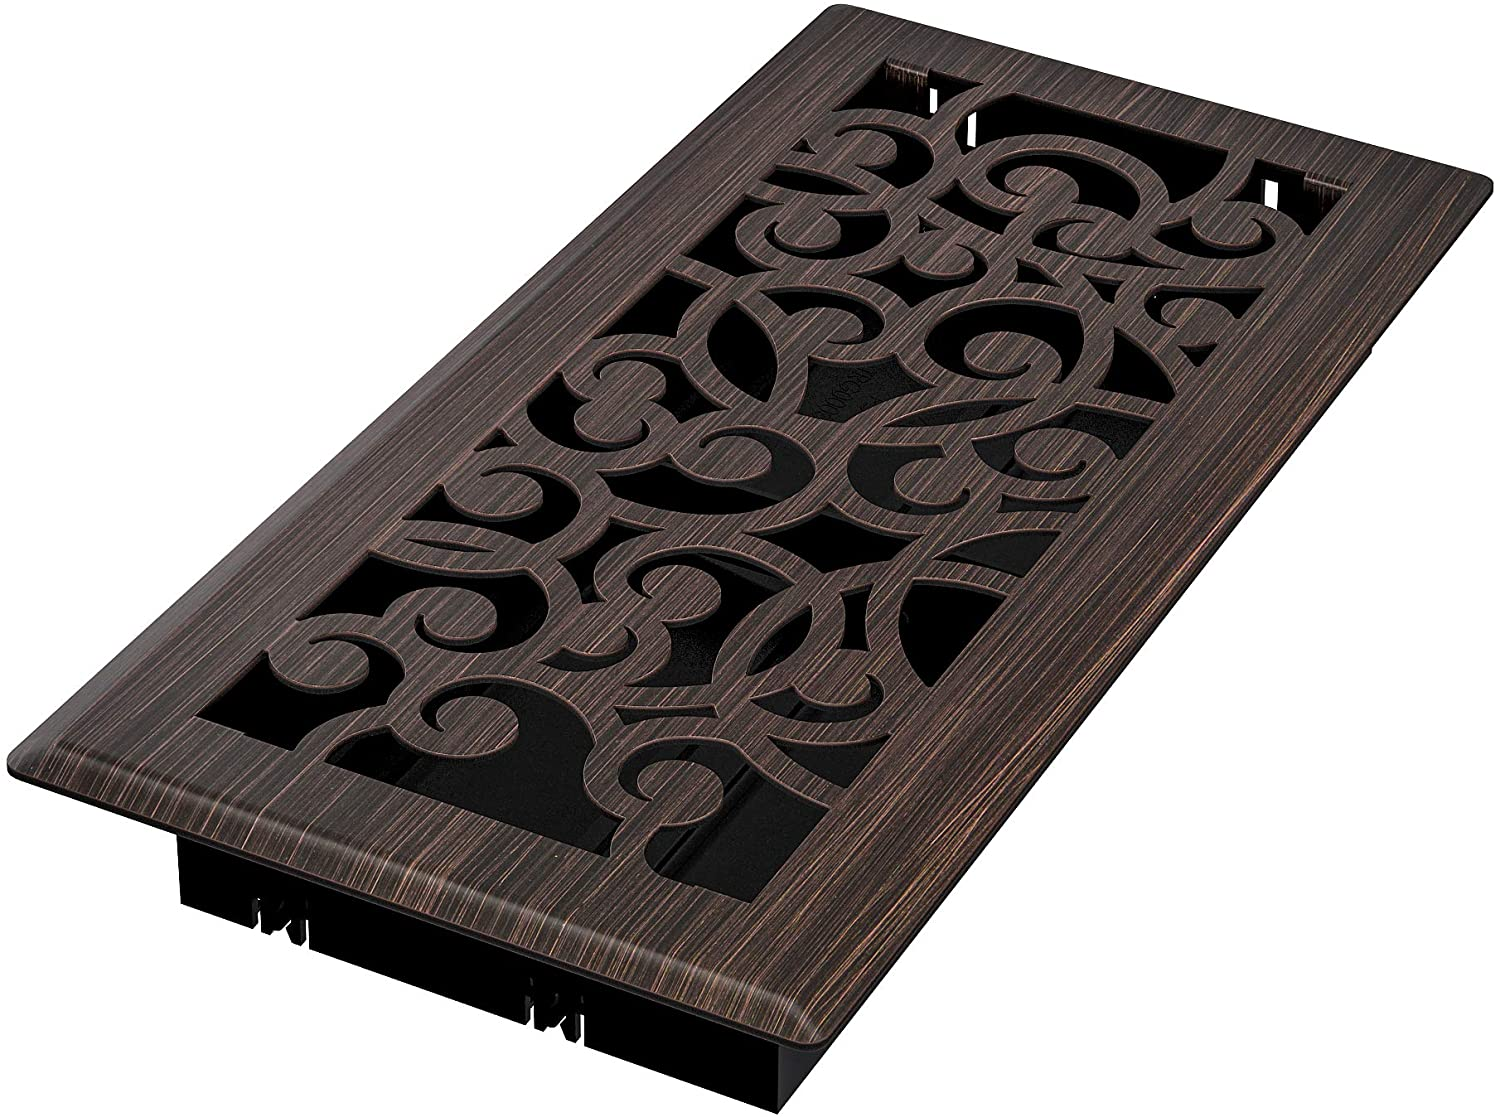 Imperial RG3365 Wonderland Decorative Floor Register, 4 x 10-Inch, Oil Rubbed Bronze